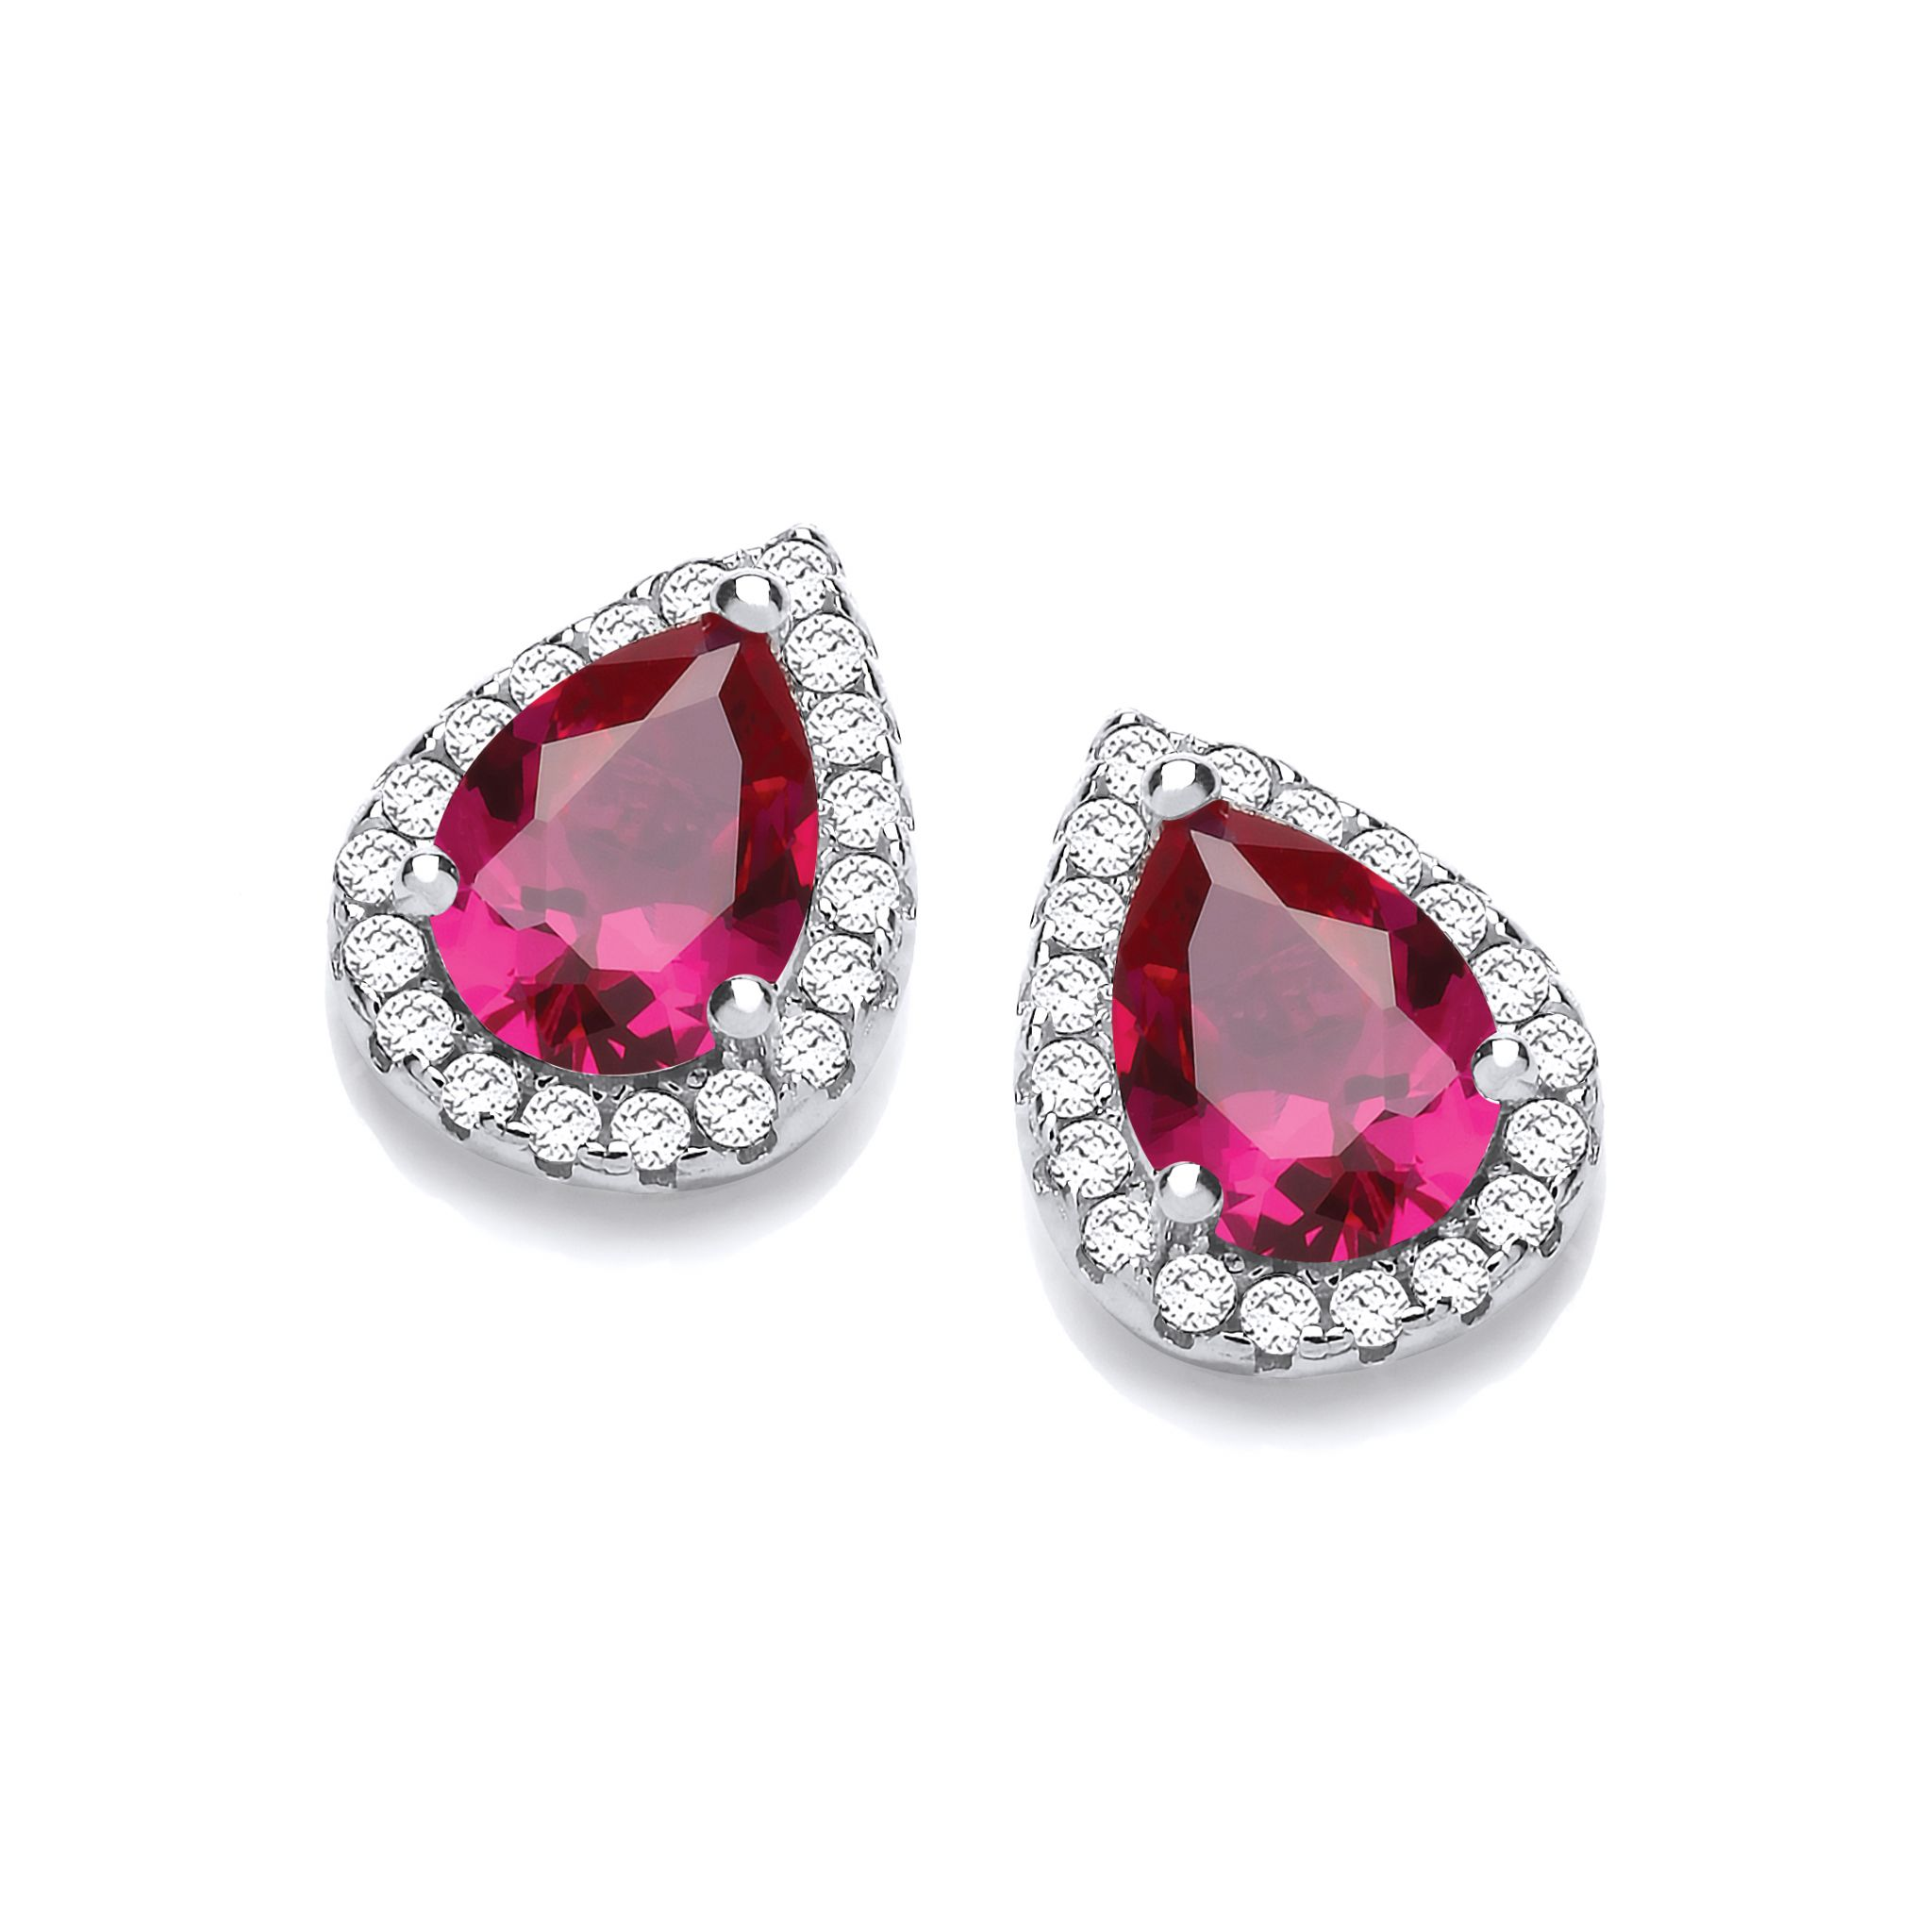 prince and ruby bleecker earrings copy rose dot jewellery l